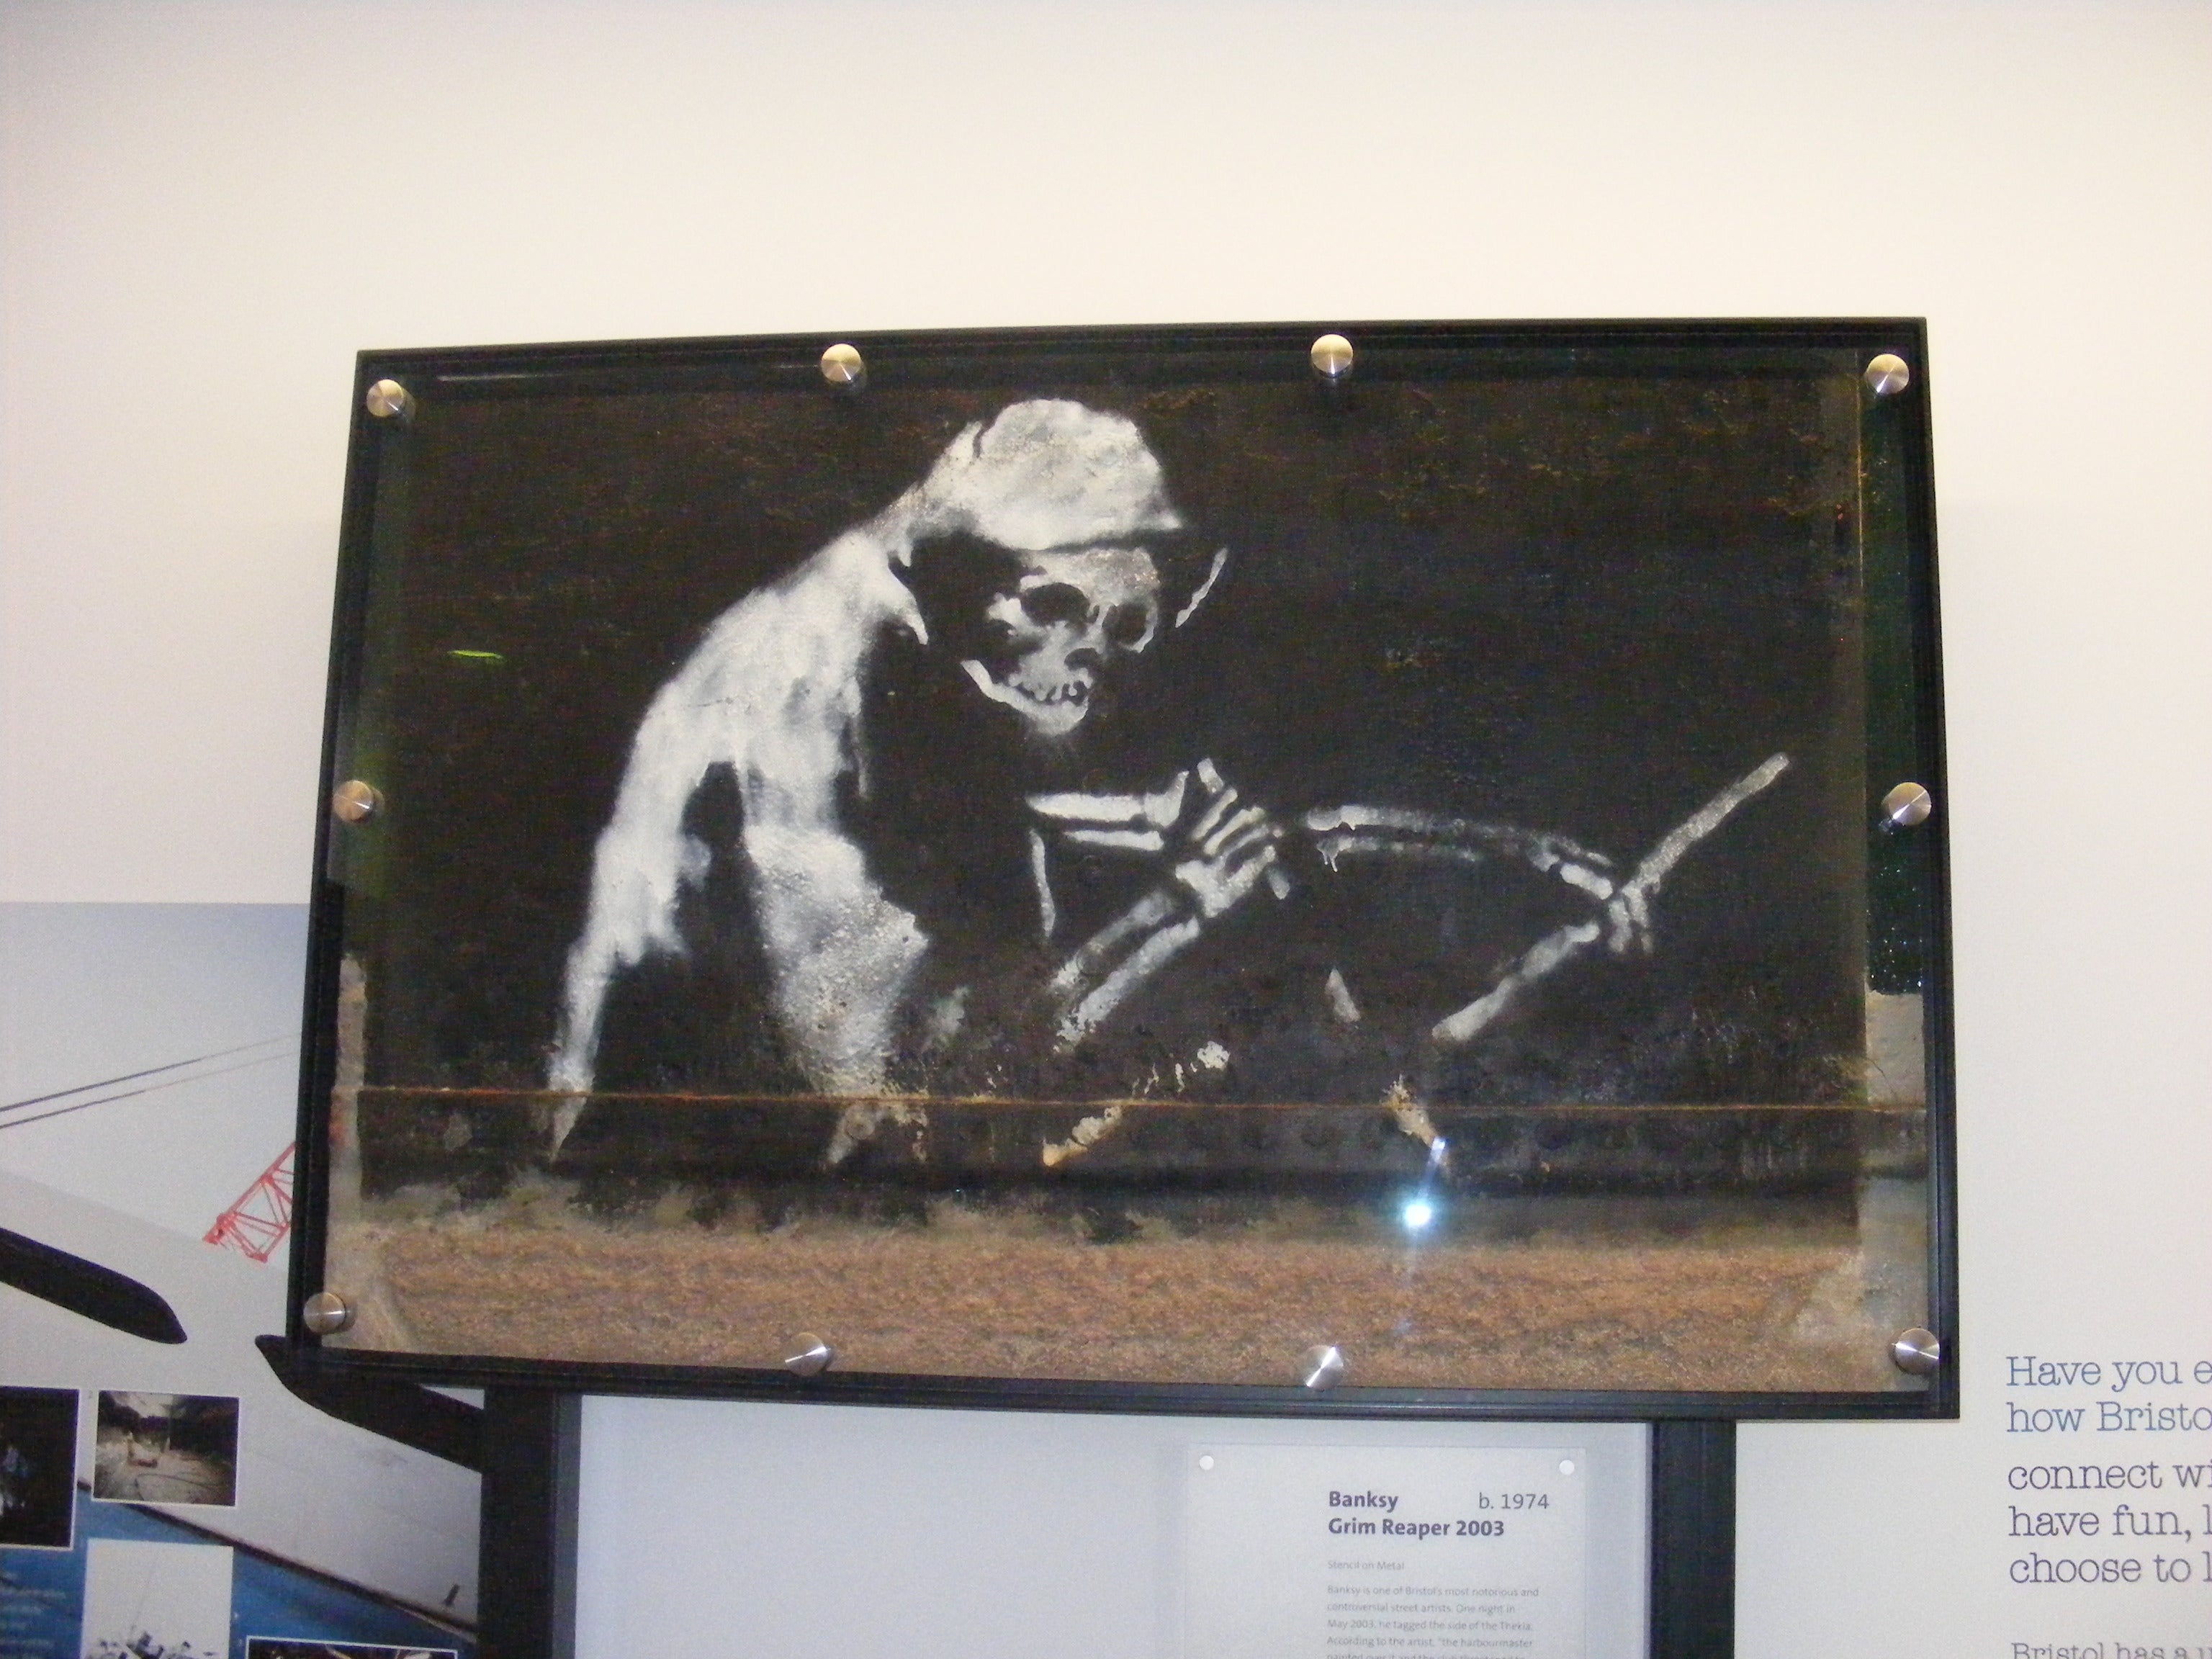 Things to do in Bristol - The M Shed Museum - Banksy